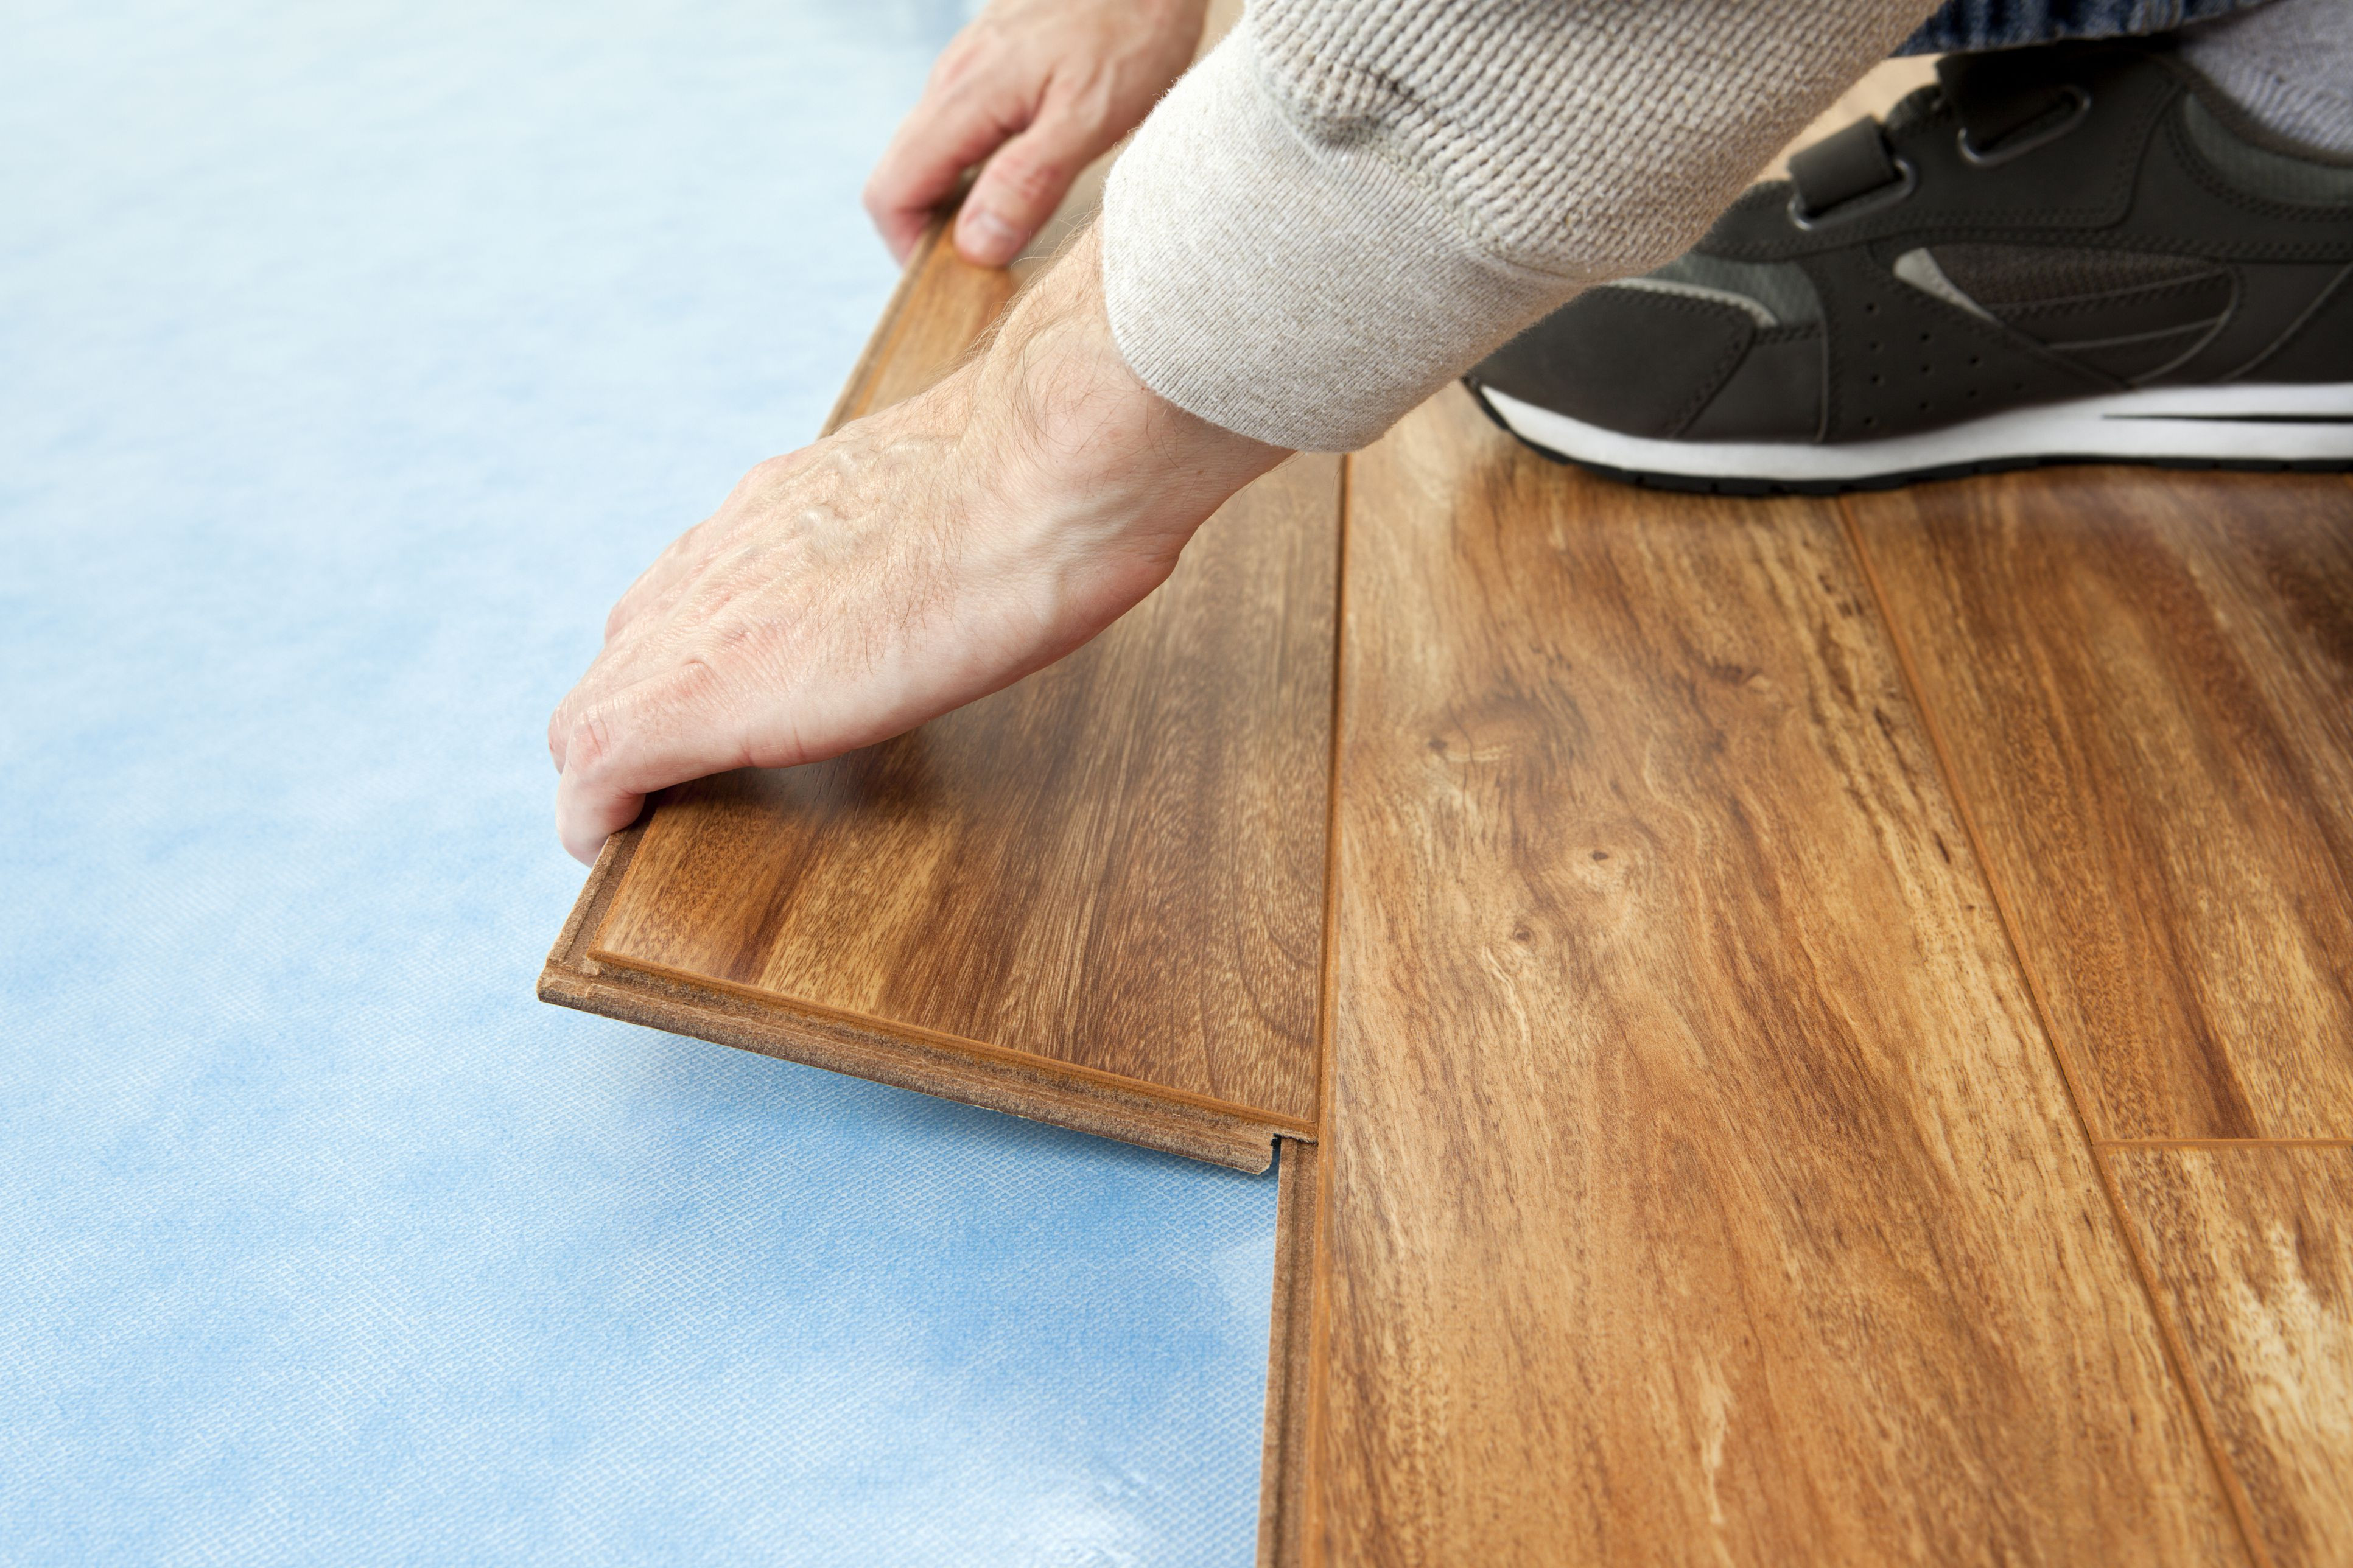 how to install hardwood flooring under toe kick of floor sound barriers that dampen noise between floors with regard to installing new floor 155283804 582b79a25f9b58d5b17e597f